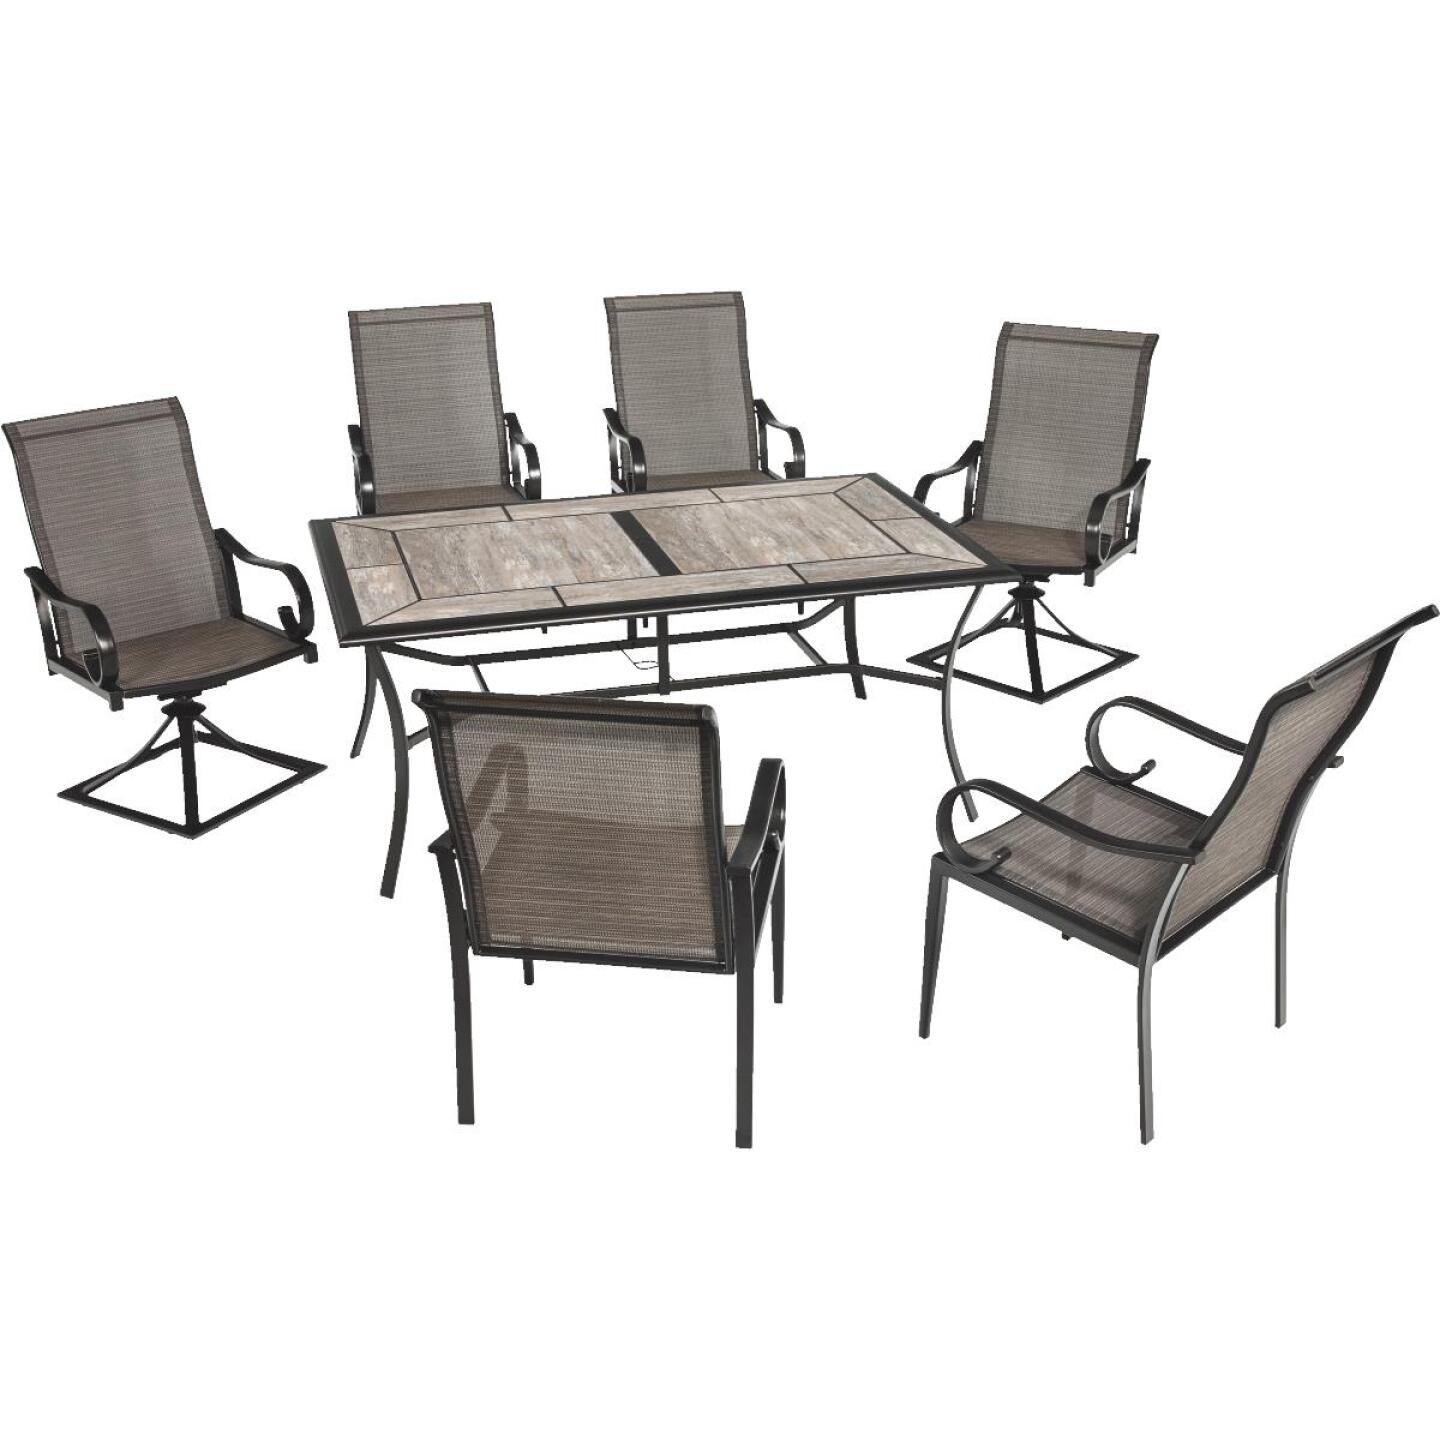 Outdoor Expressions Berkshire 7-Piece Dining Set Image 205